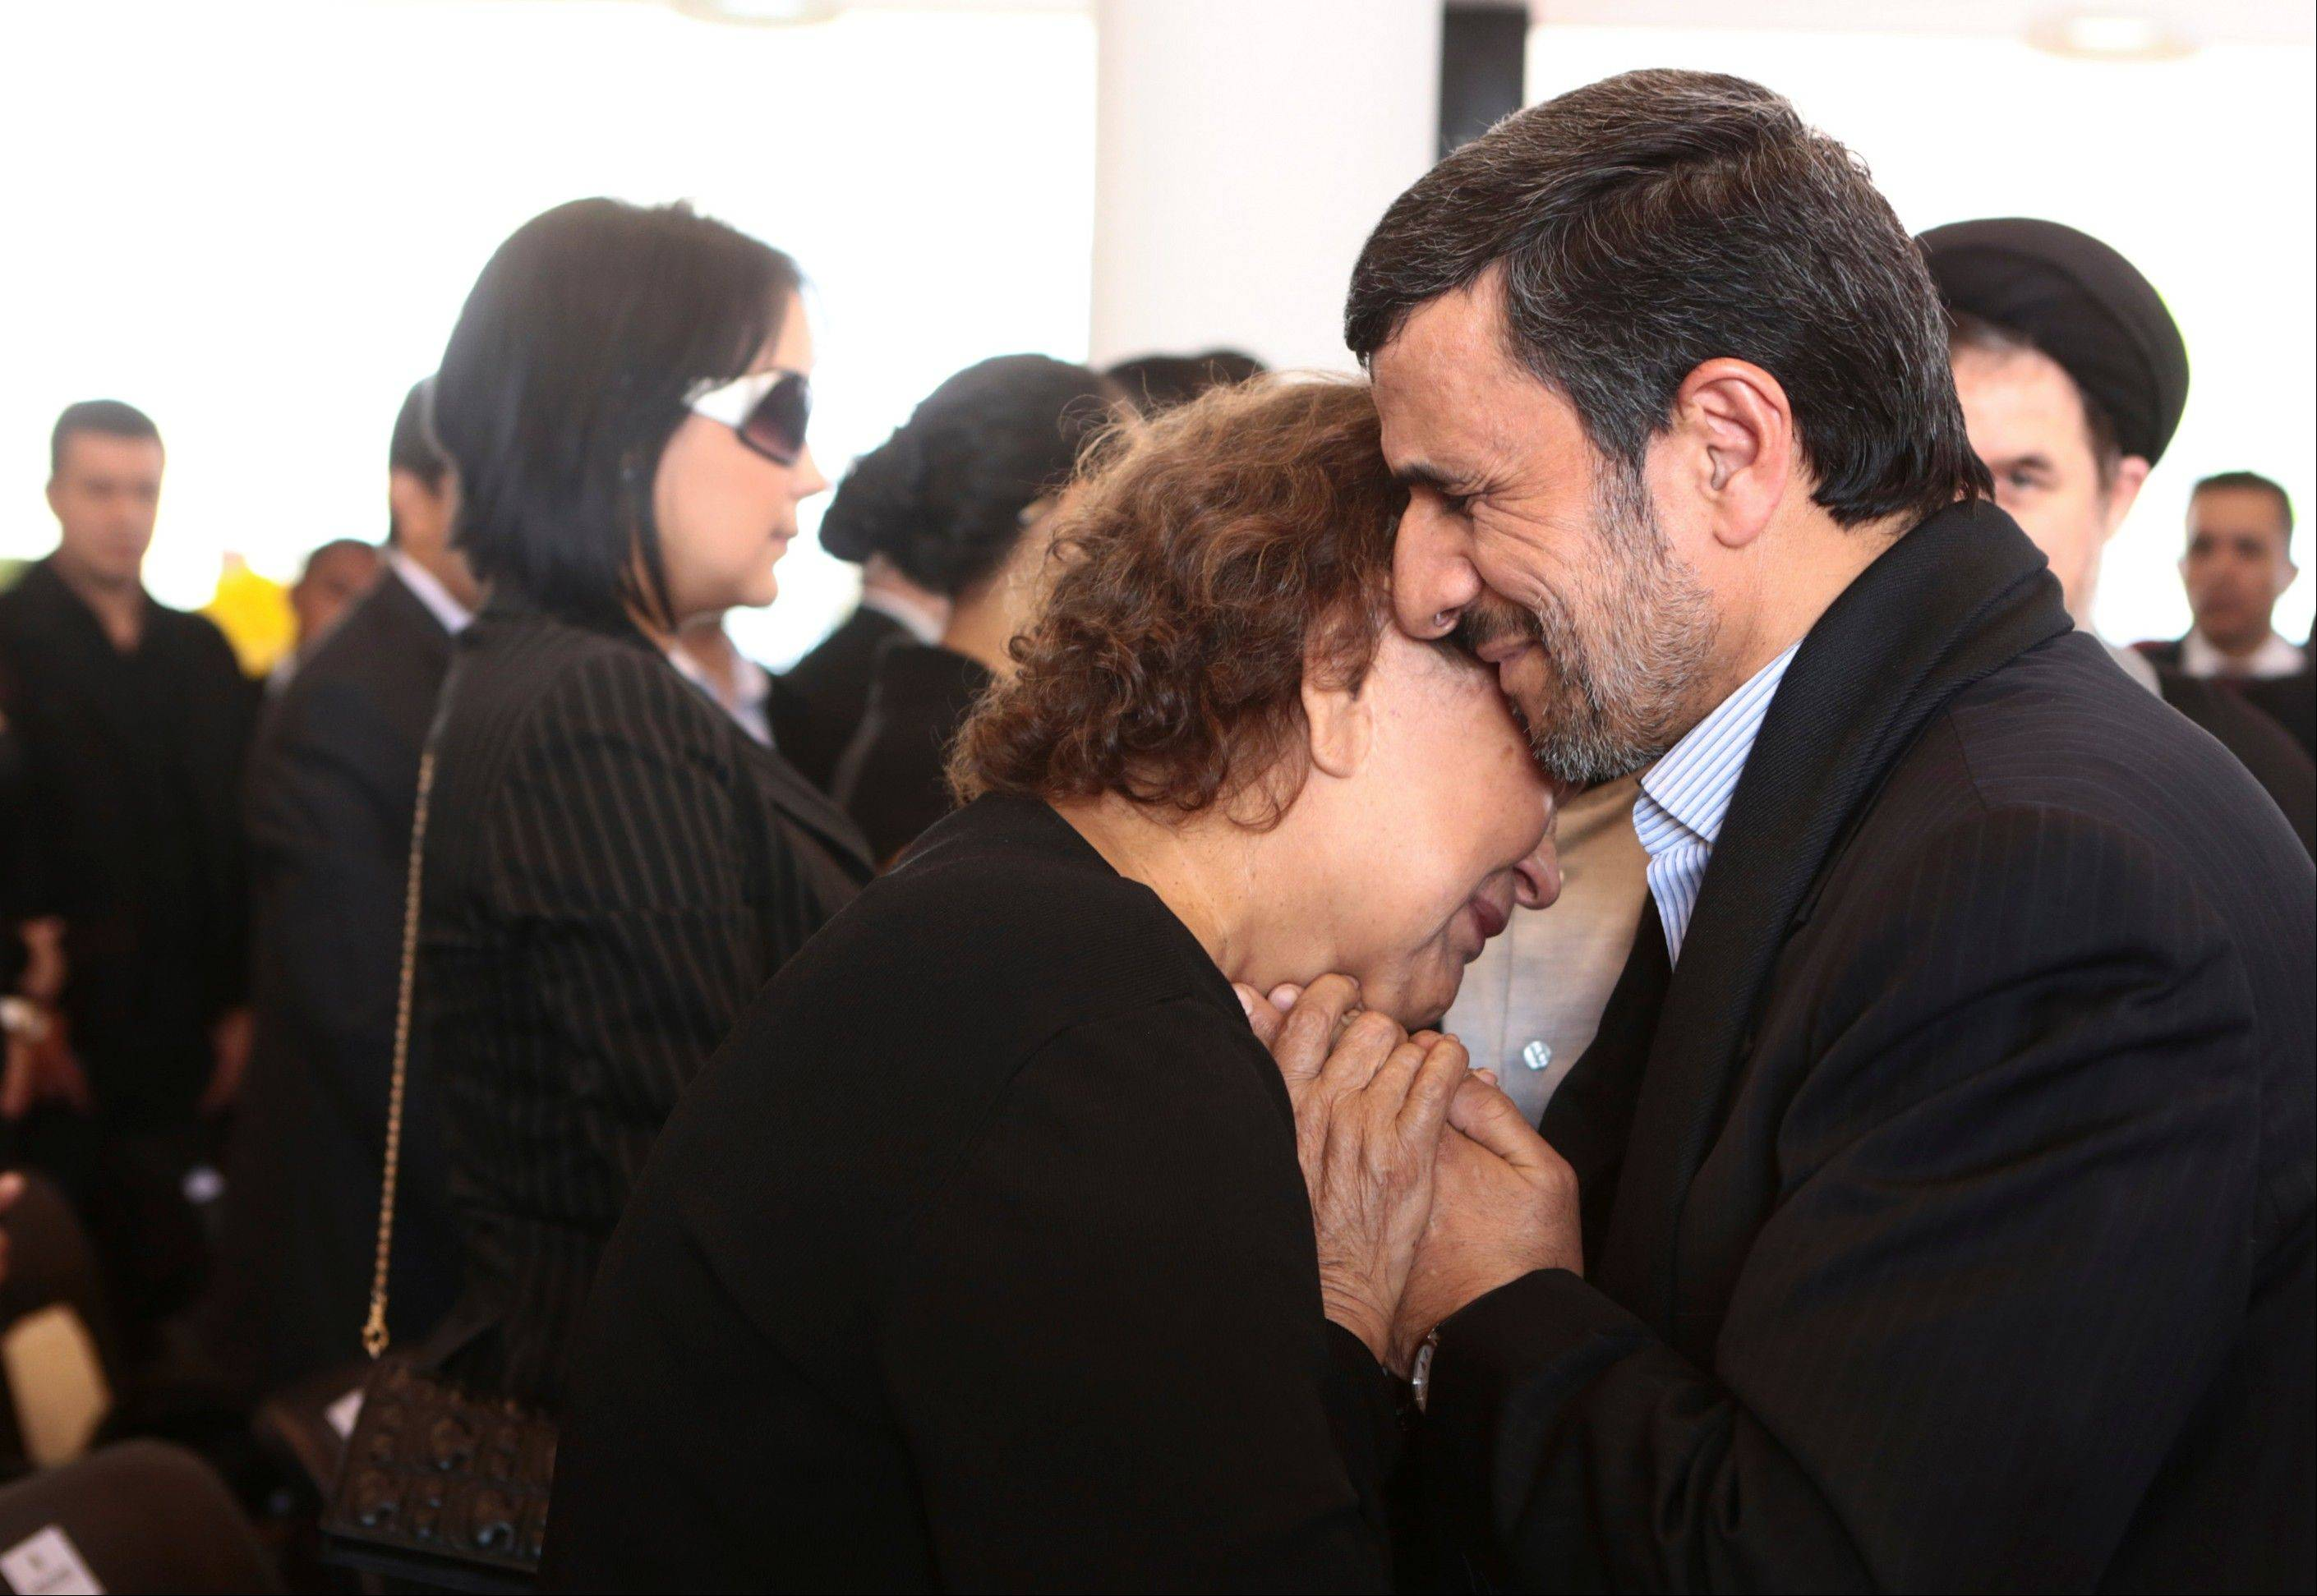 Senior Iranian clerics have criticized President Mahmoud Ahmadinejad for consoling Hugo Chavez's mother with a hug -- a physical contact considered a sin under the country's strict Islamic codes.